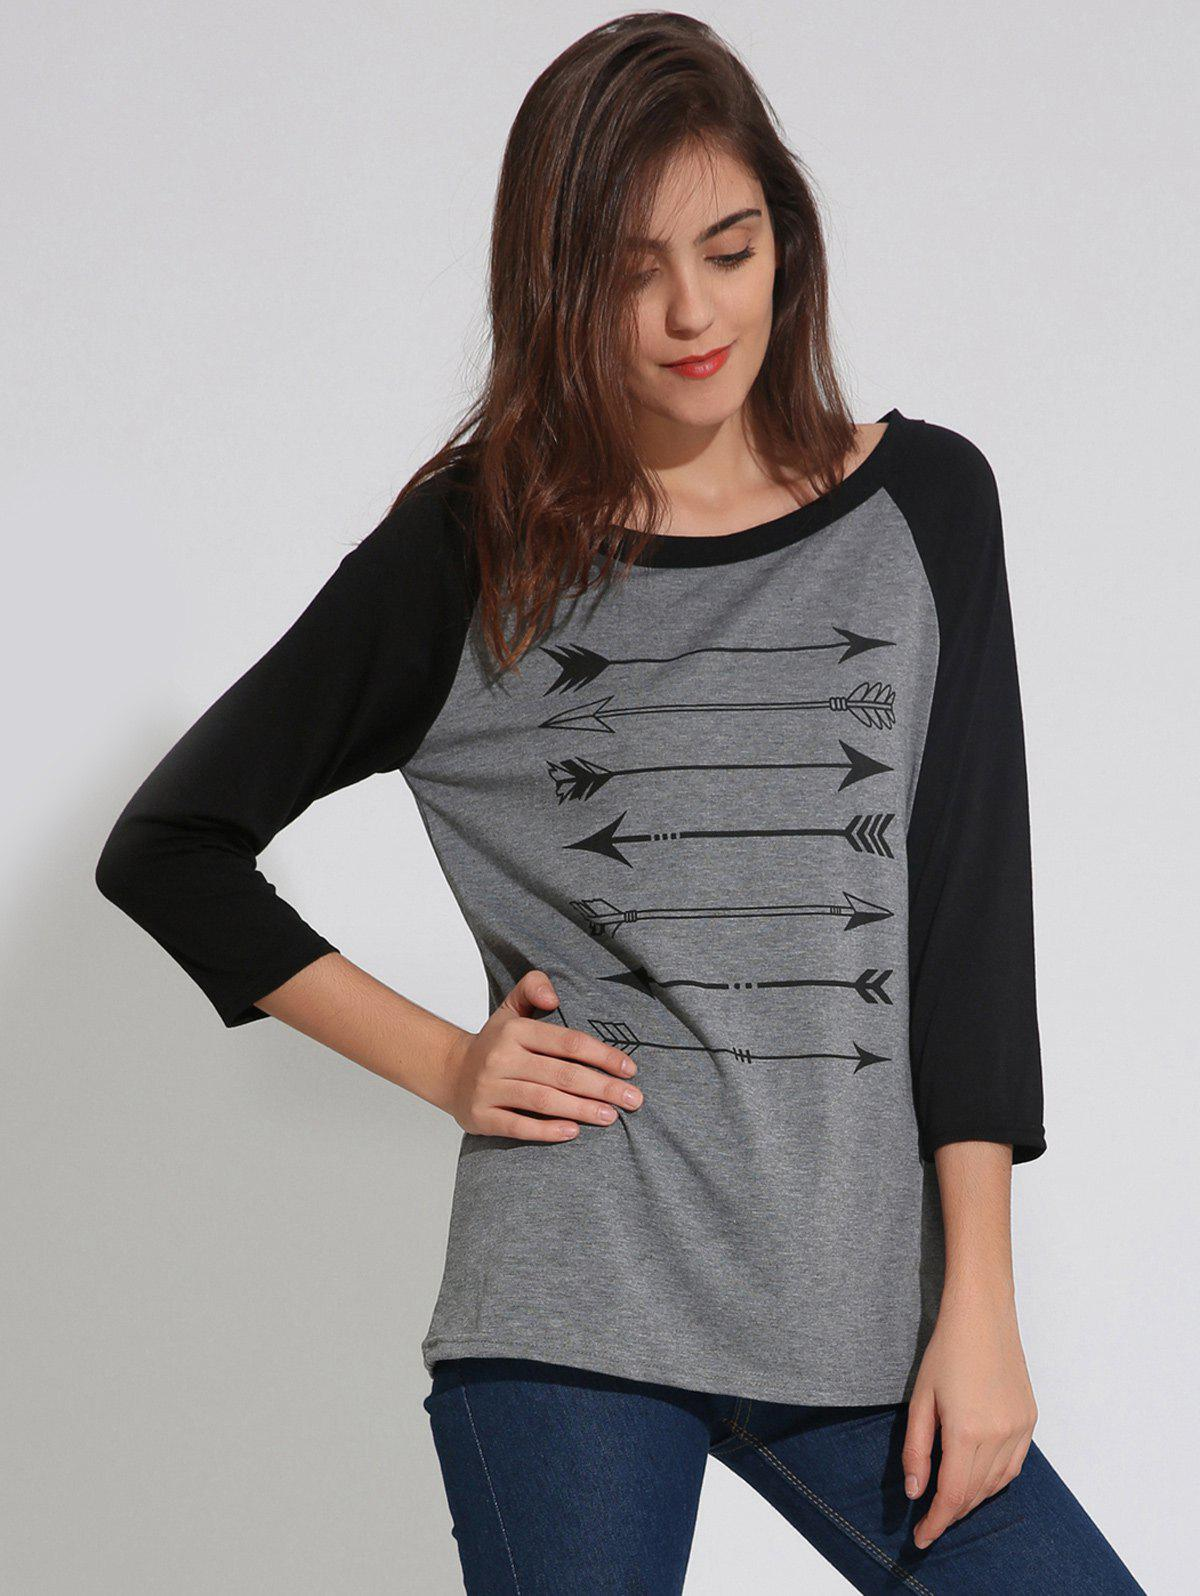 Raglan Sleeve T-Shirt with Arrows Print